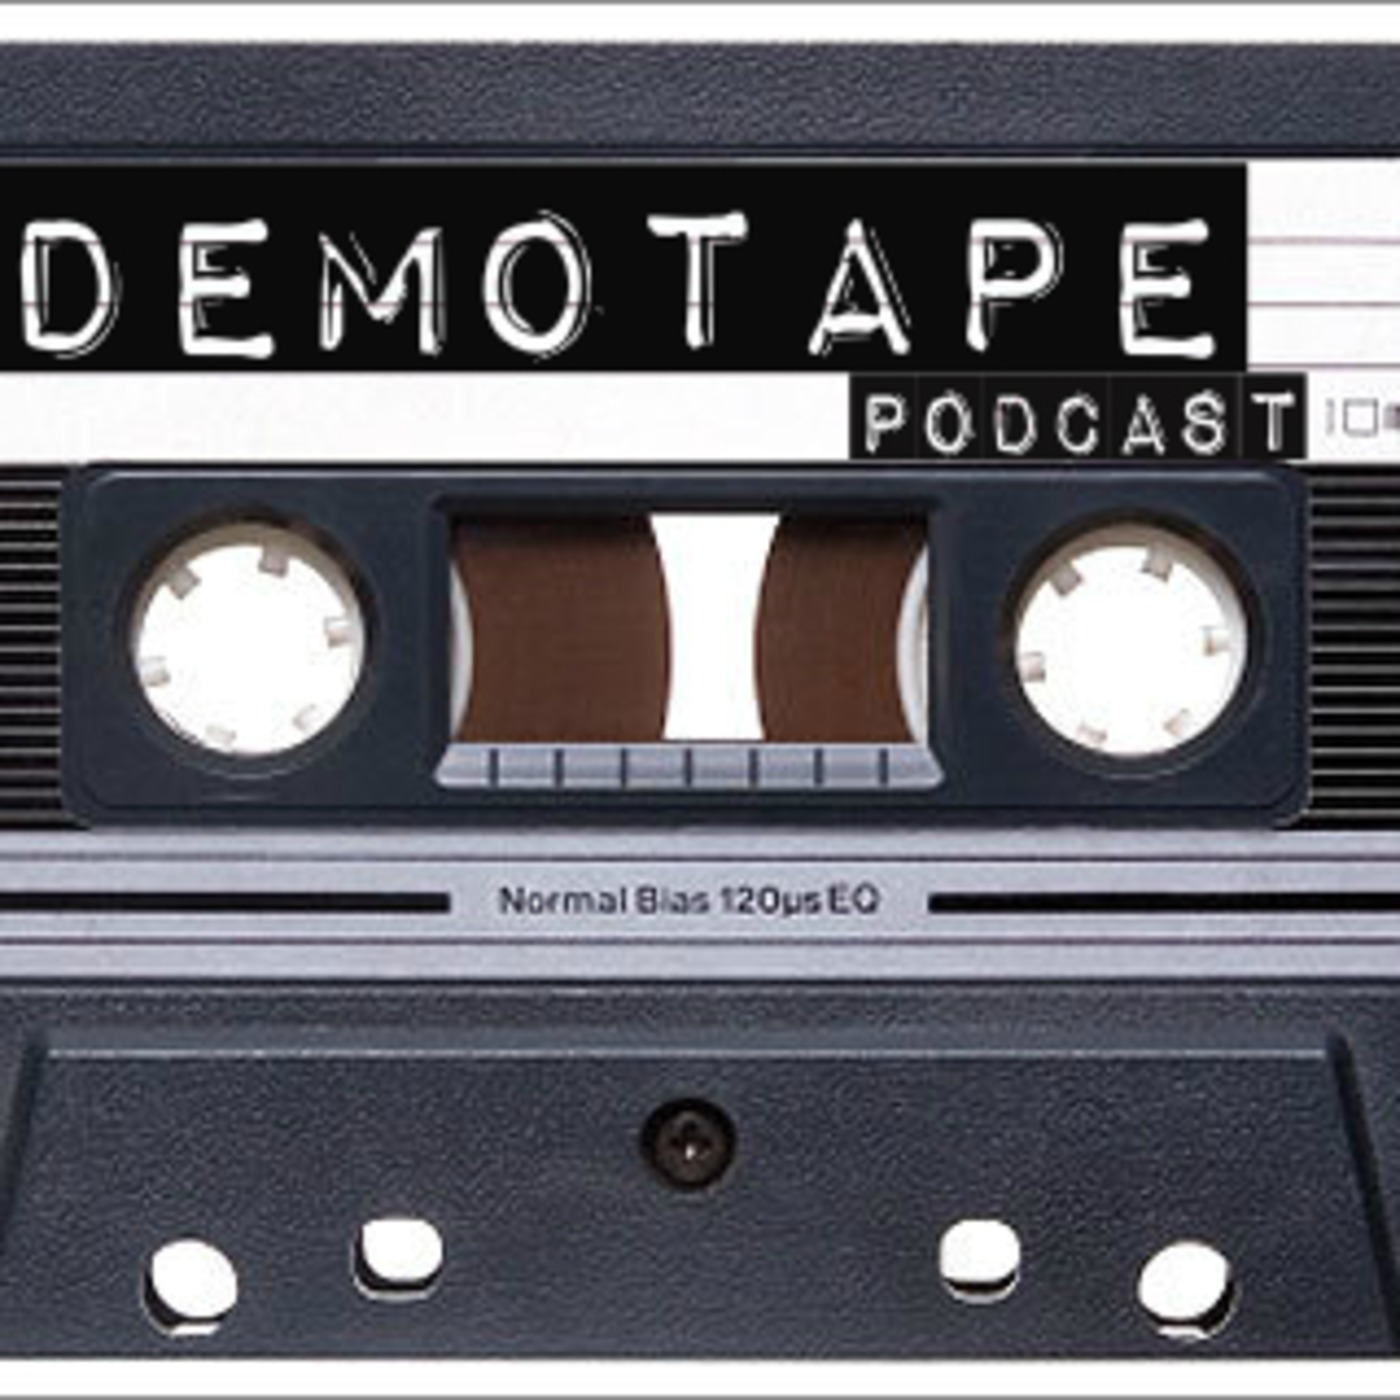 Demo Tape Radio Podcast